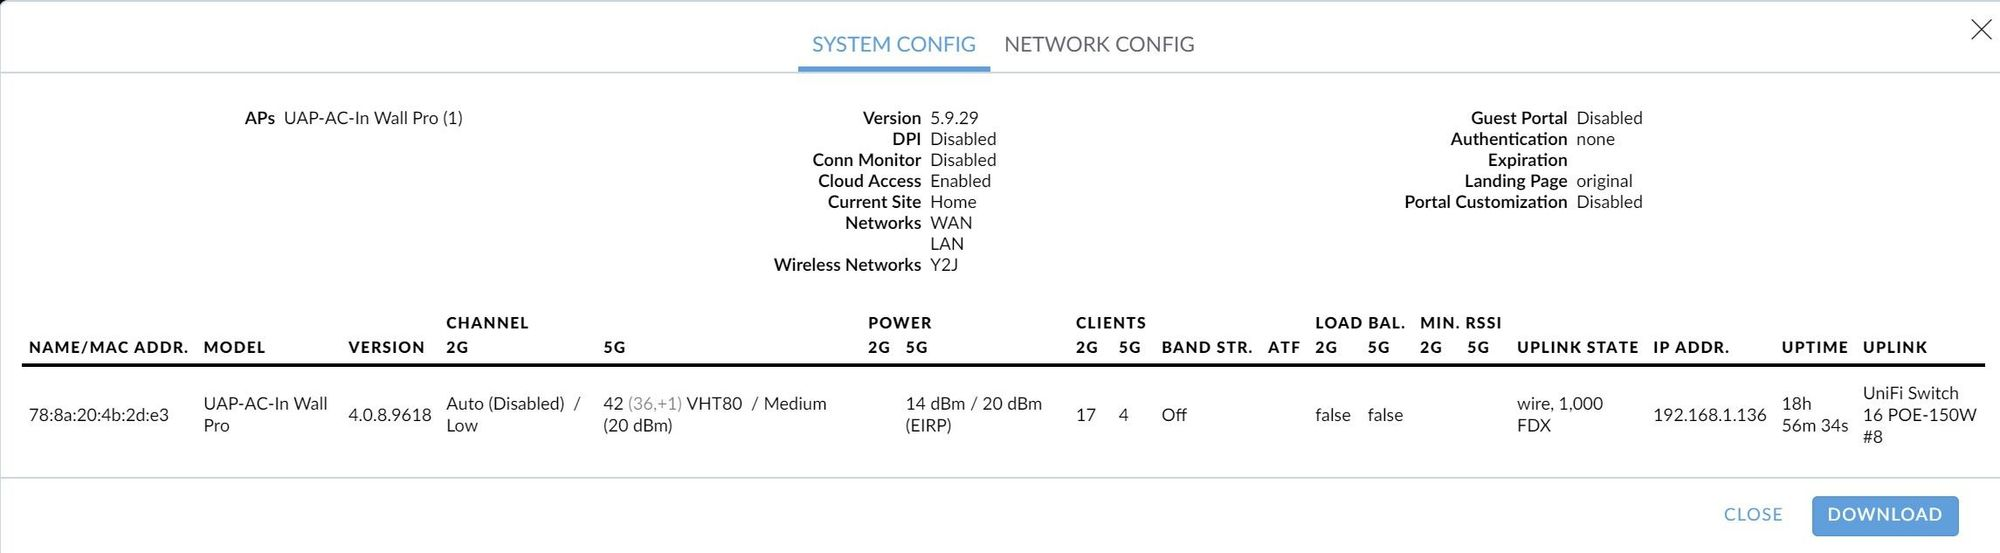 New Unifi System, Problem with Slow / Throttled Download